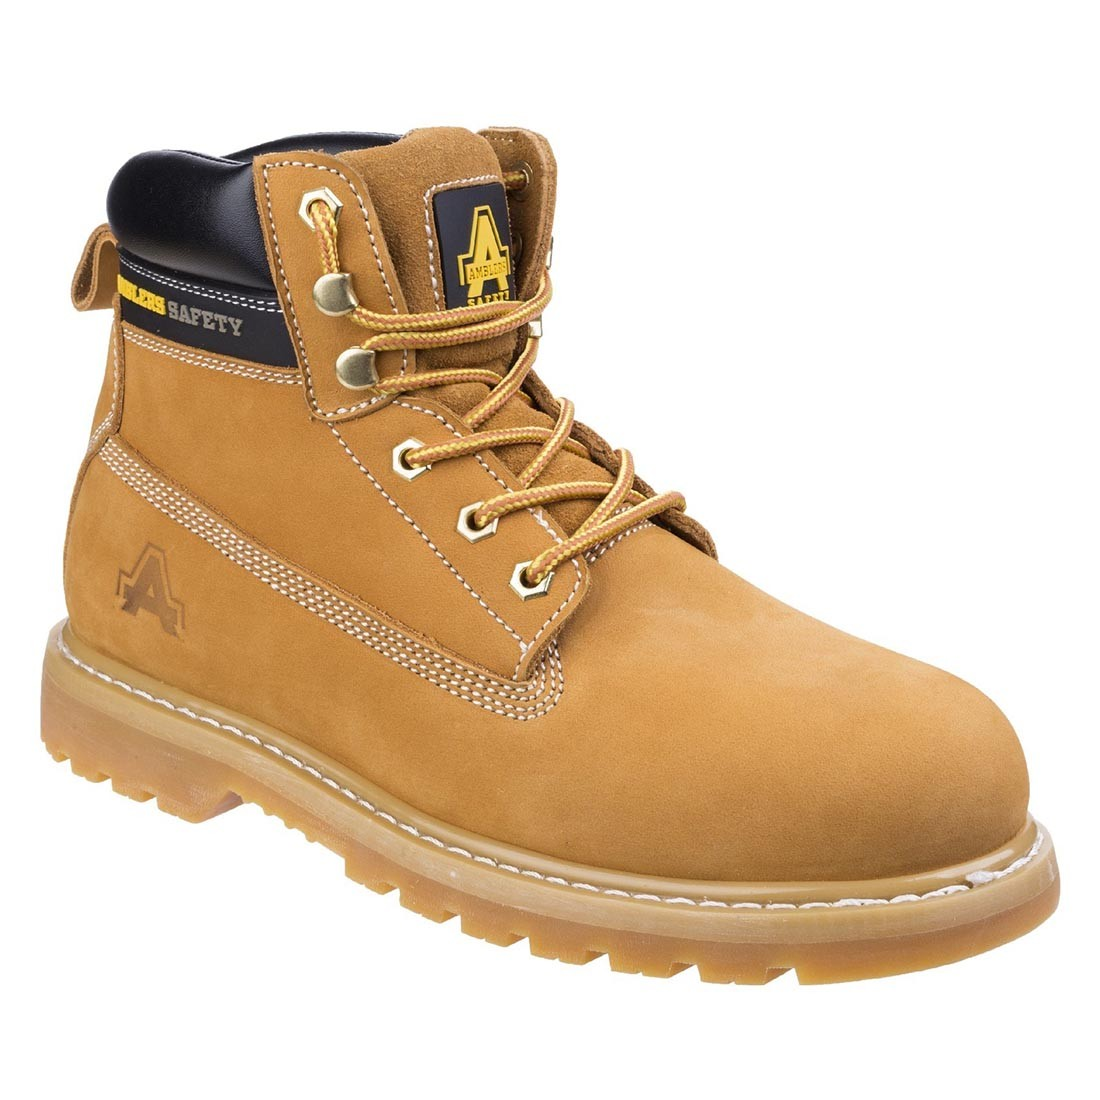 Amblers FS7 Steel Toe Cap Boot Honey Safety Boots